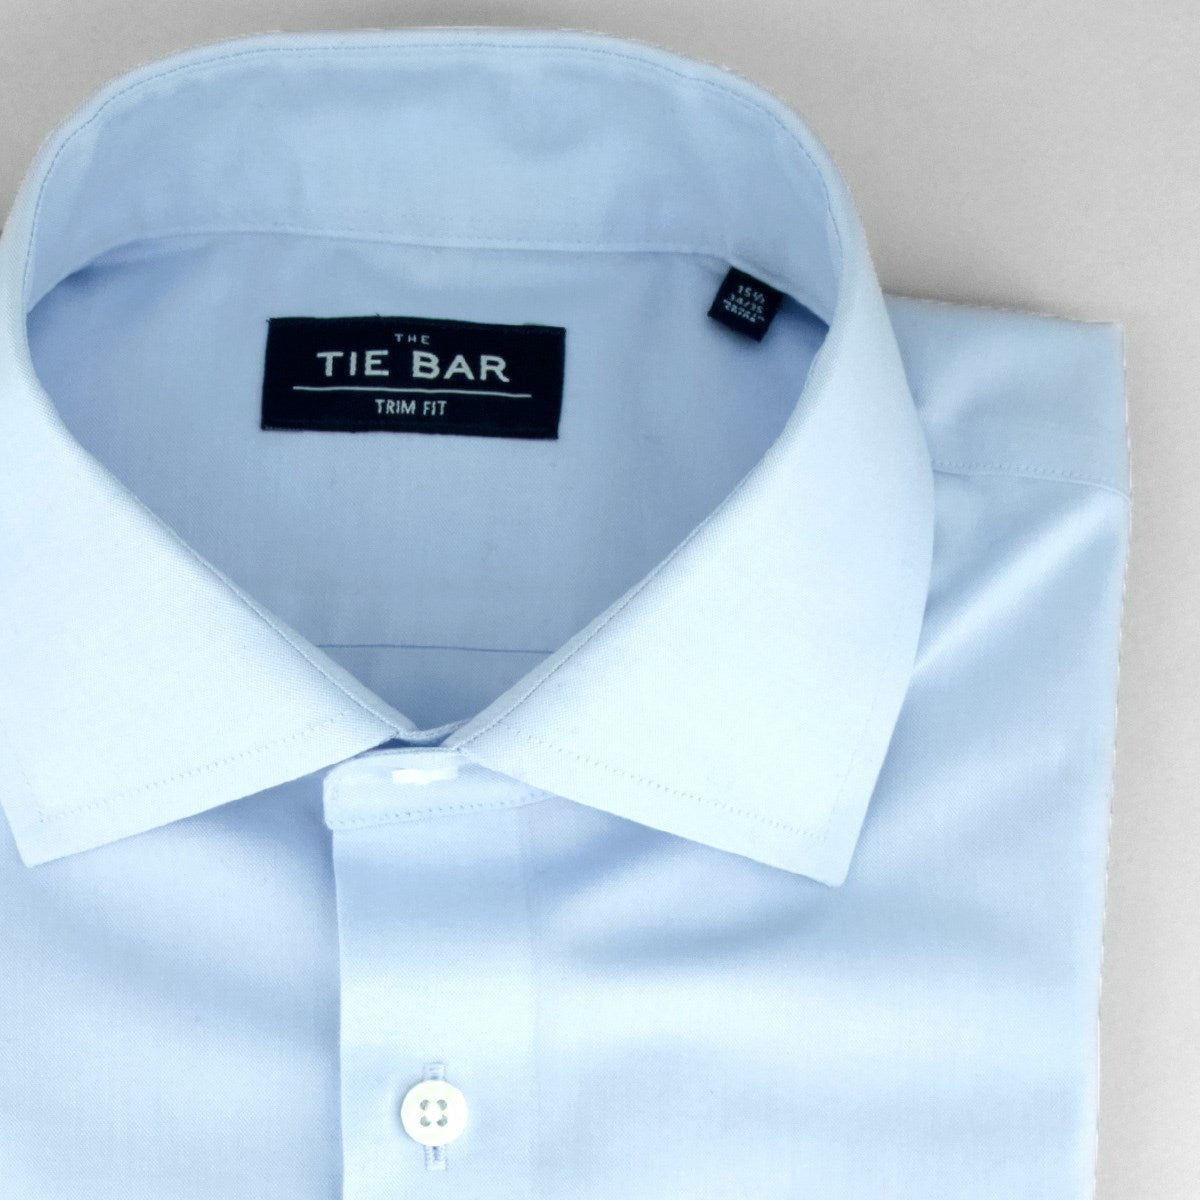 With light shirt to wear tie blue How To